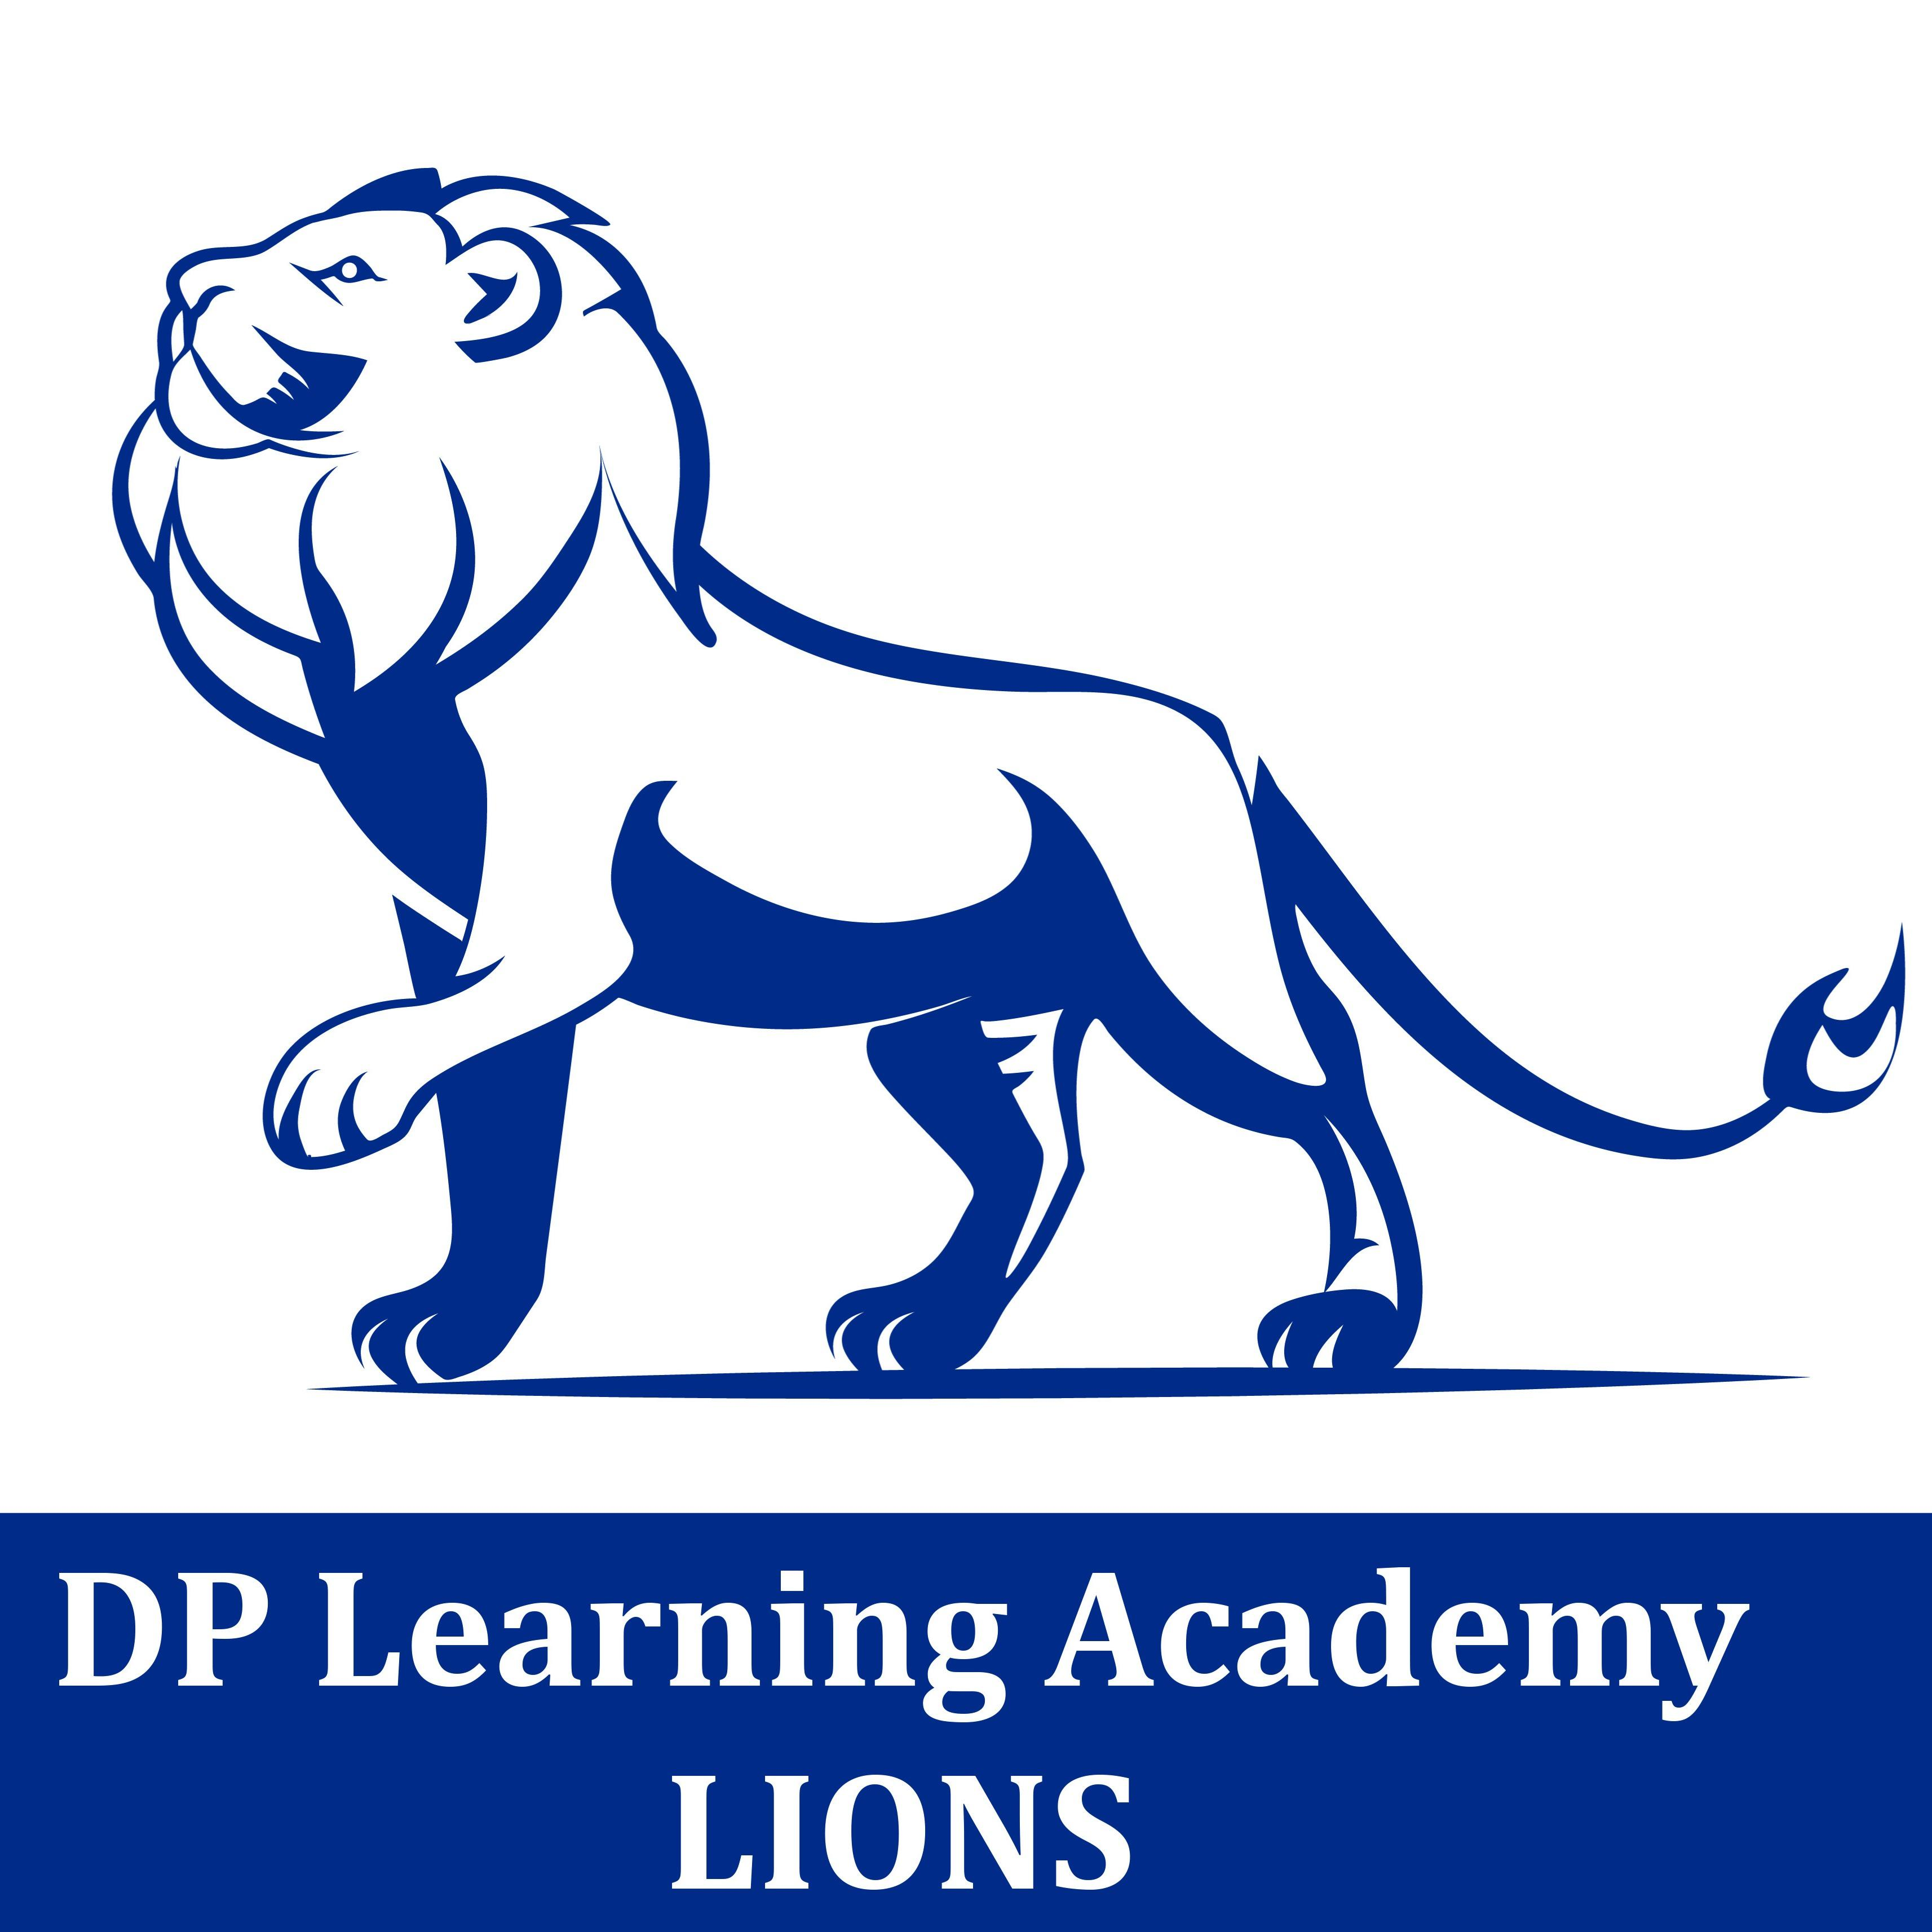 DP Learning Academy image 5